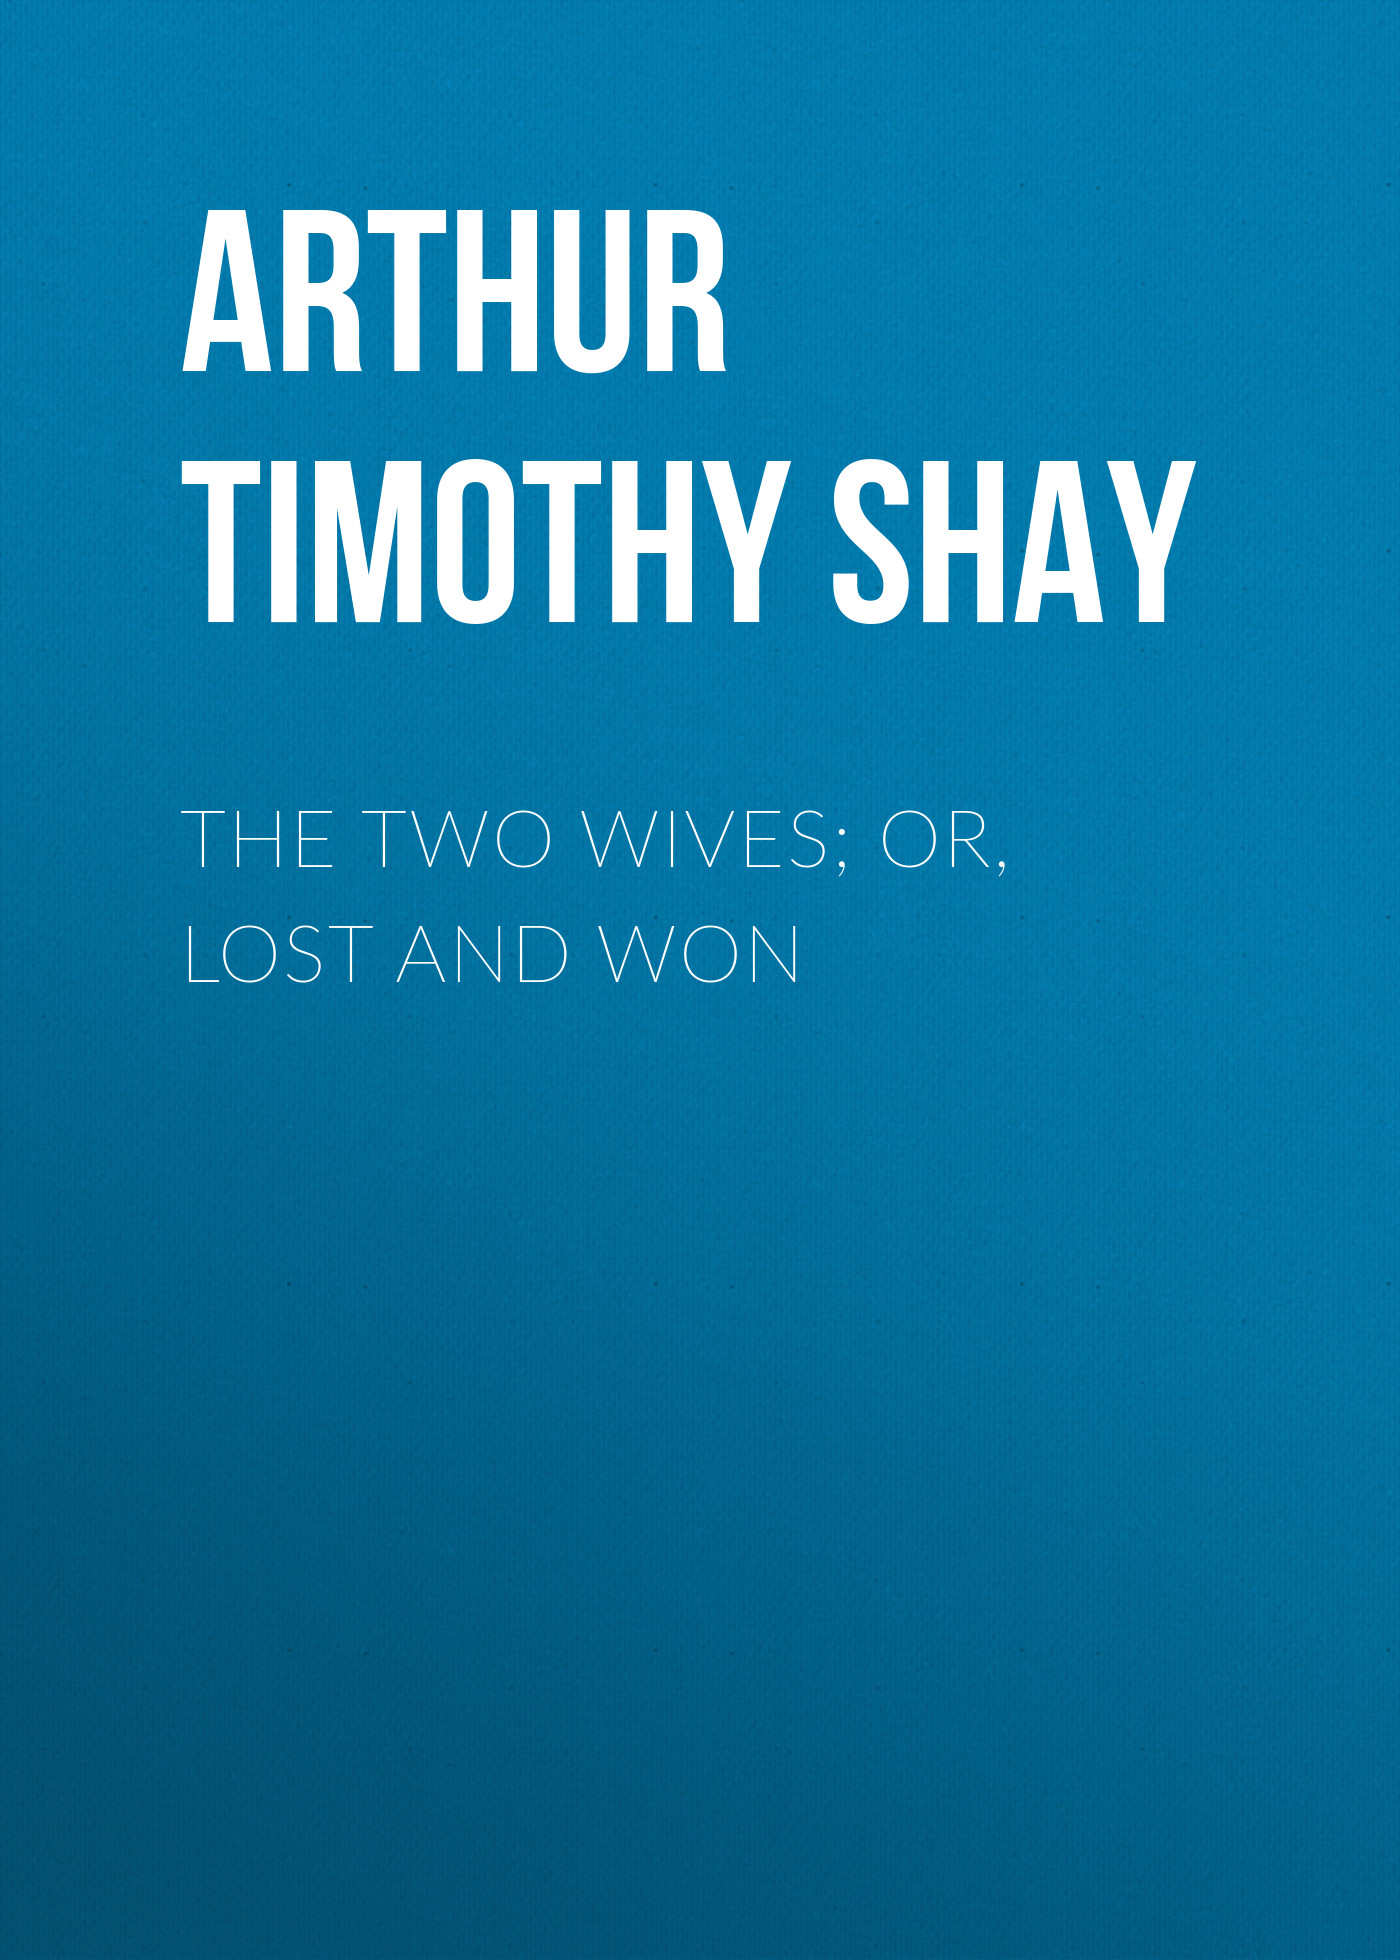 Arthur Timothy Shay The Two Wives; Or, Lost and Won arthur timothy shay woman s trials or tales and sketches from the life around us